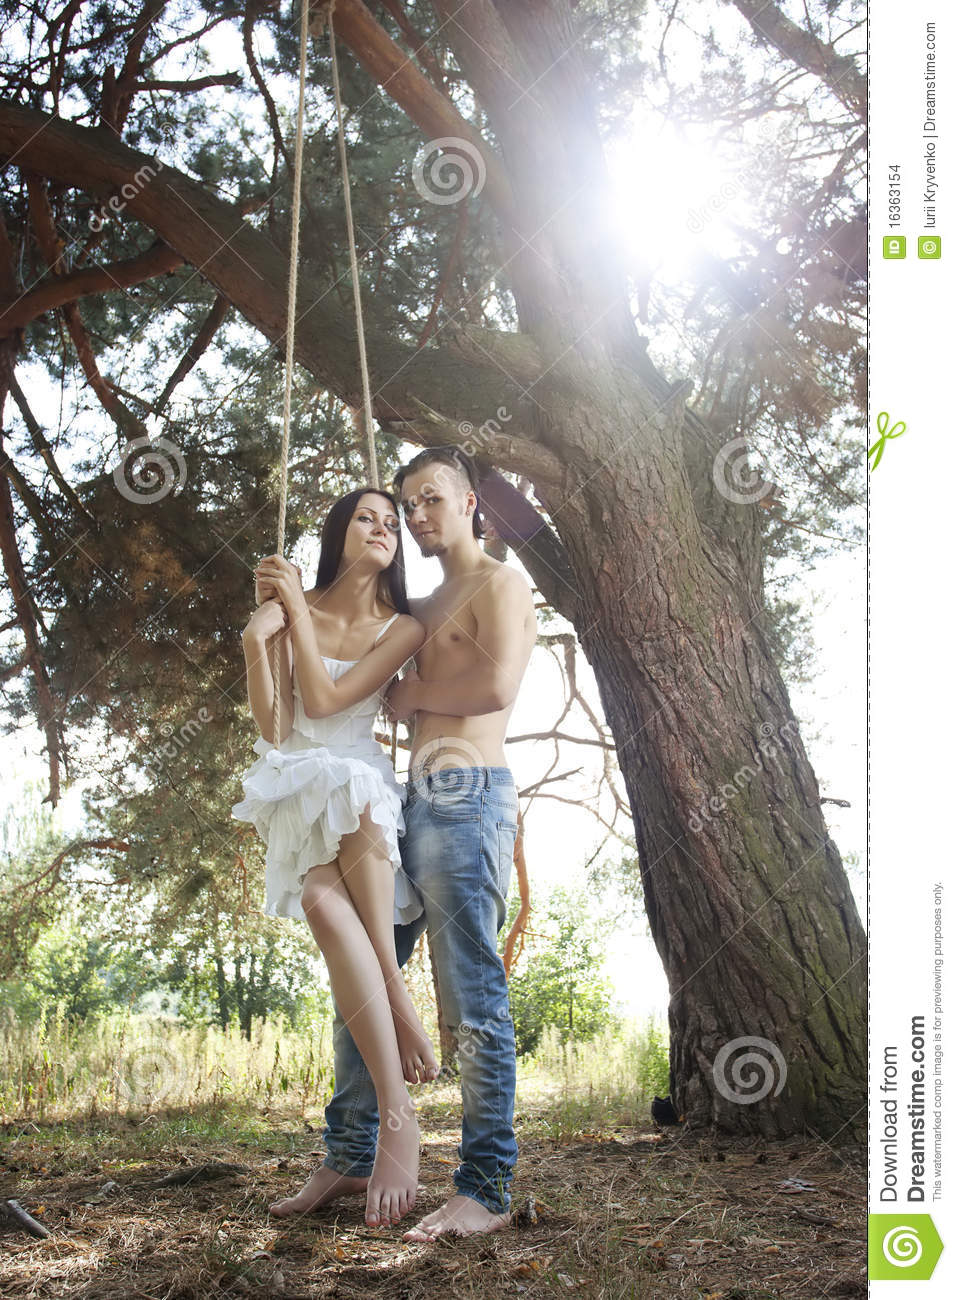 Young swinging couples photos